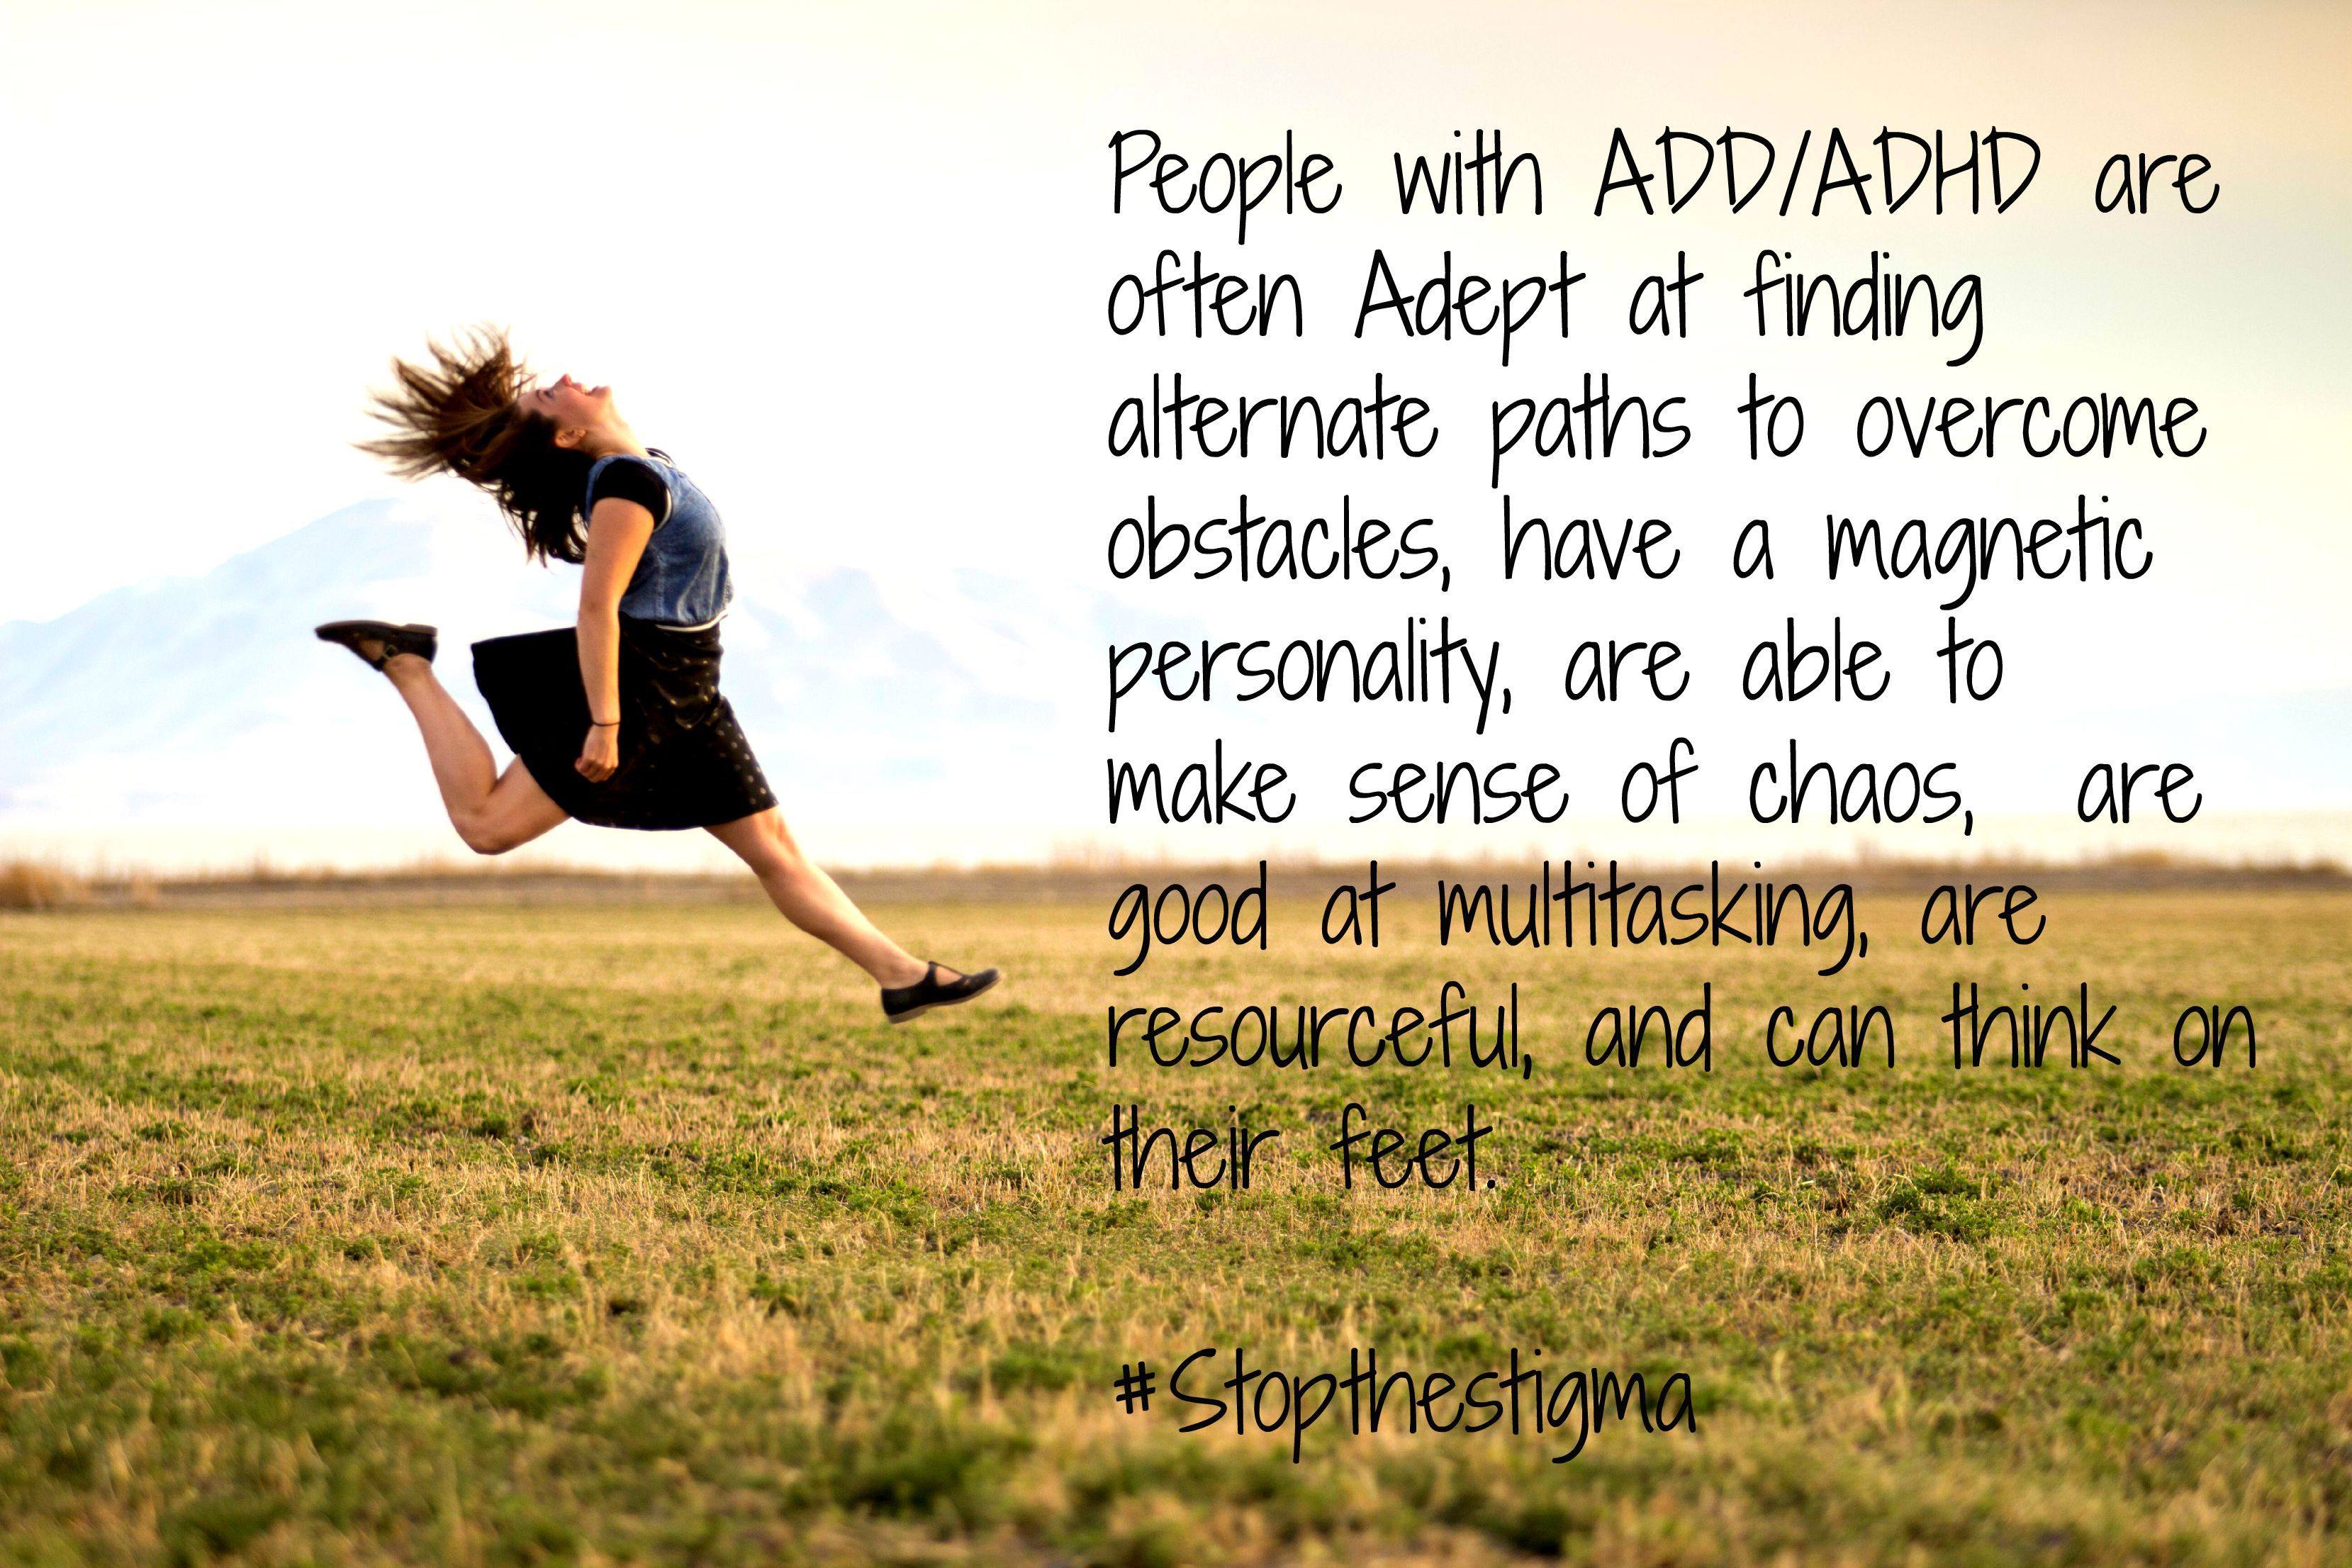 dept at finding alternate paths to overcome obstacles, have a magnetic personality, are able to see patterns and make sense of chaos, can be hyper focused (contrary to popular belief), good at multitasking, can think on their feet, are resourceful, and many more positive things. #NotAnAdjective #StopTheStigma